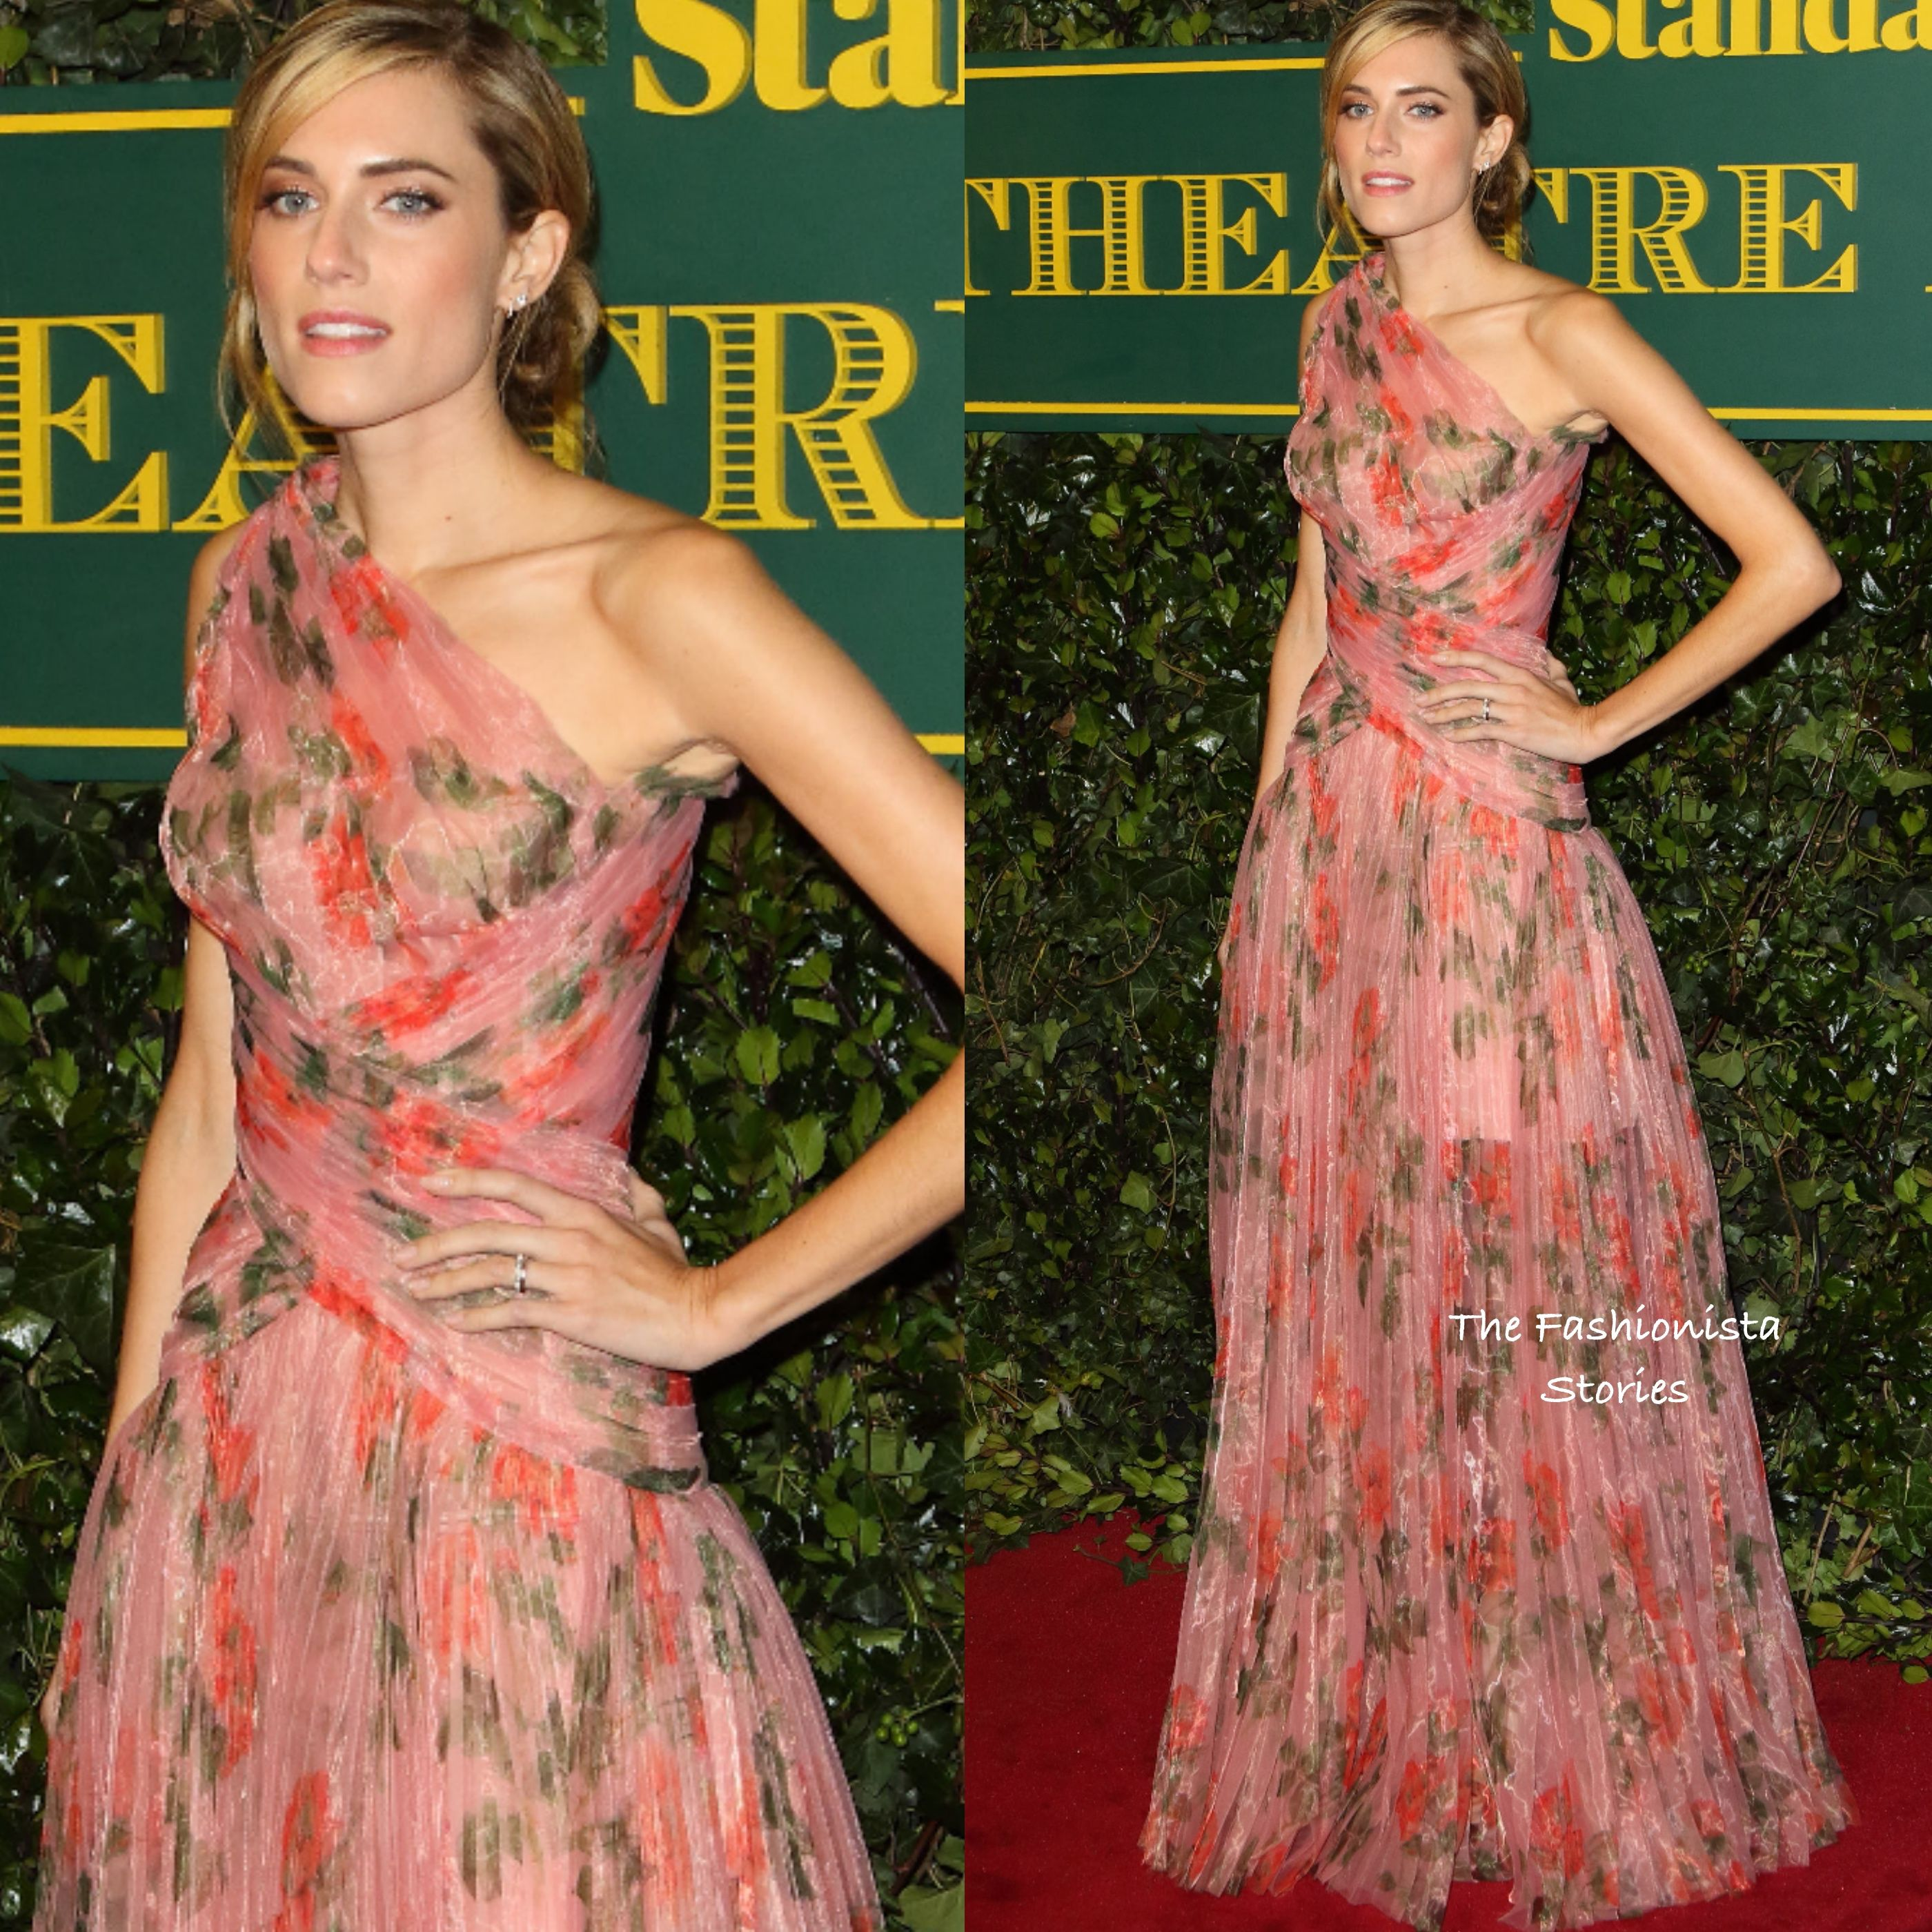 Evening standard theatre awards 2018 dresses in style